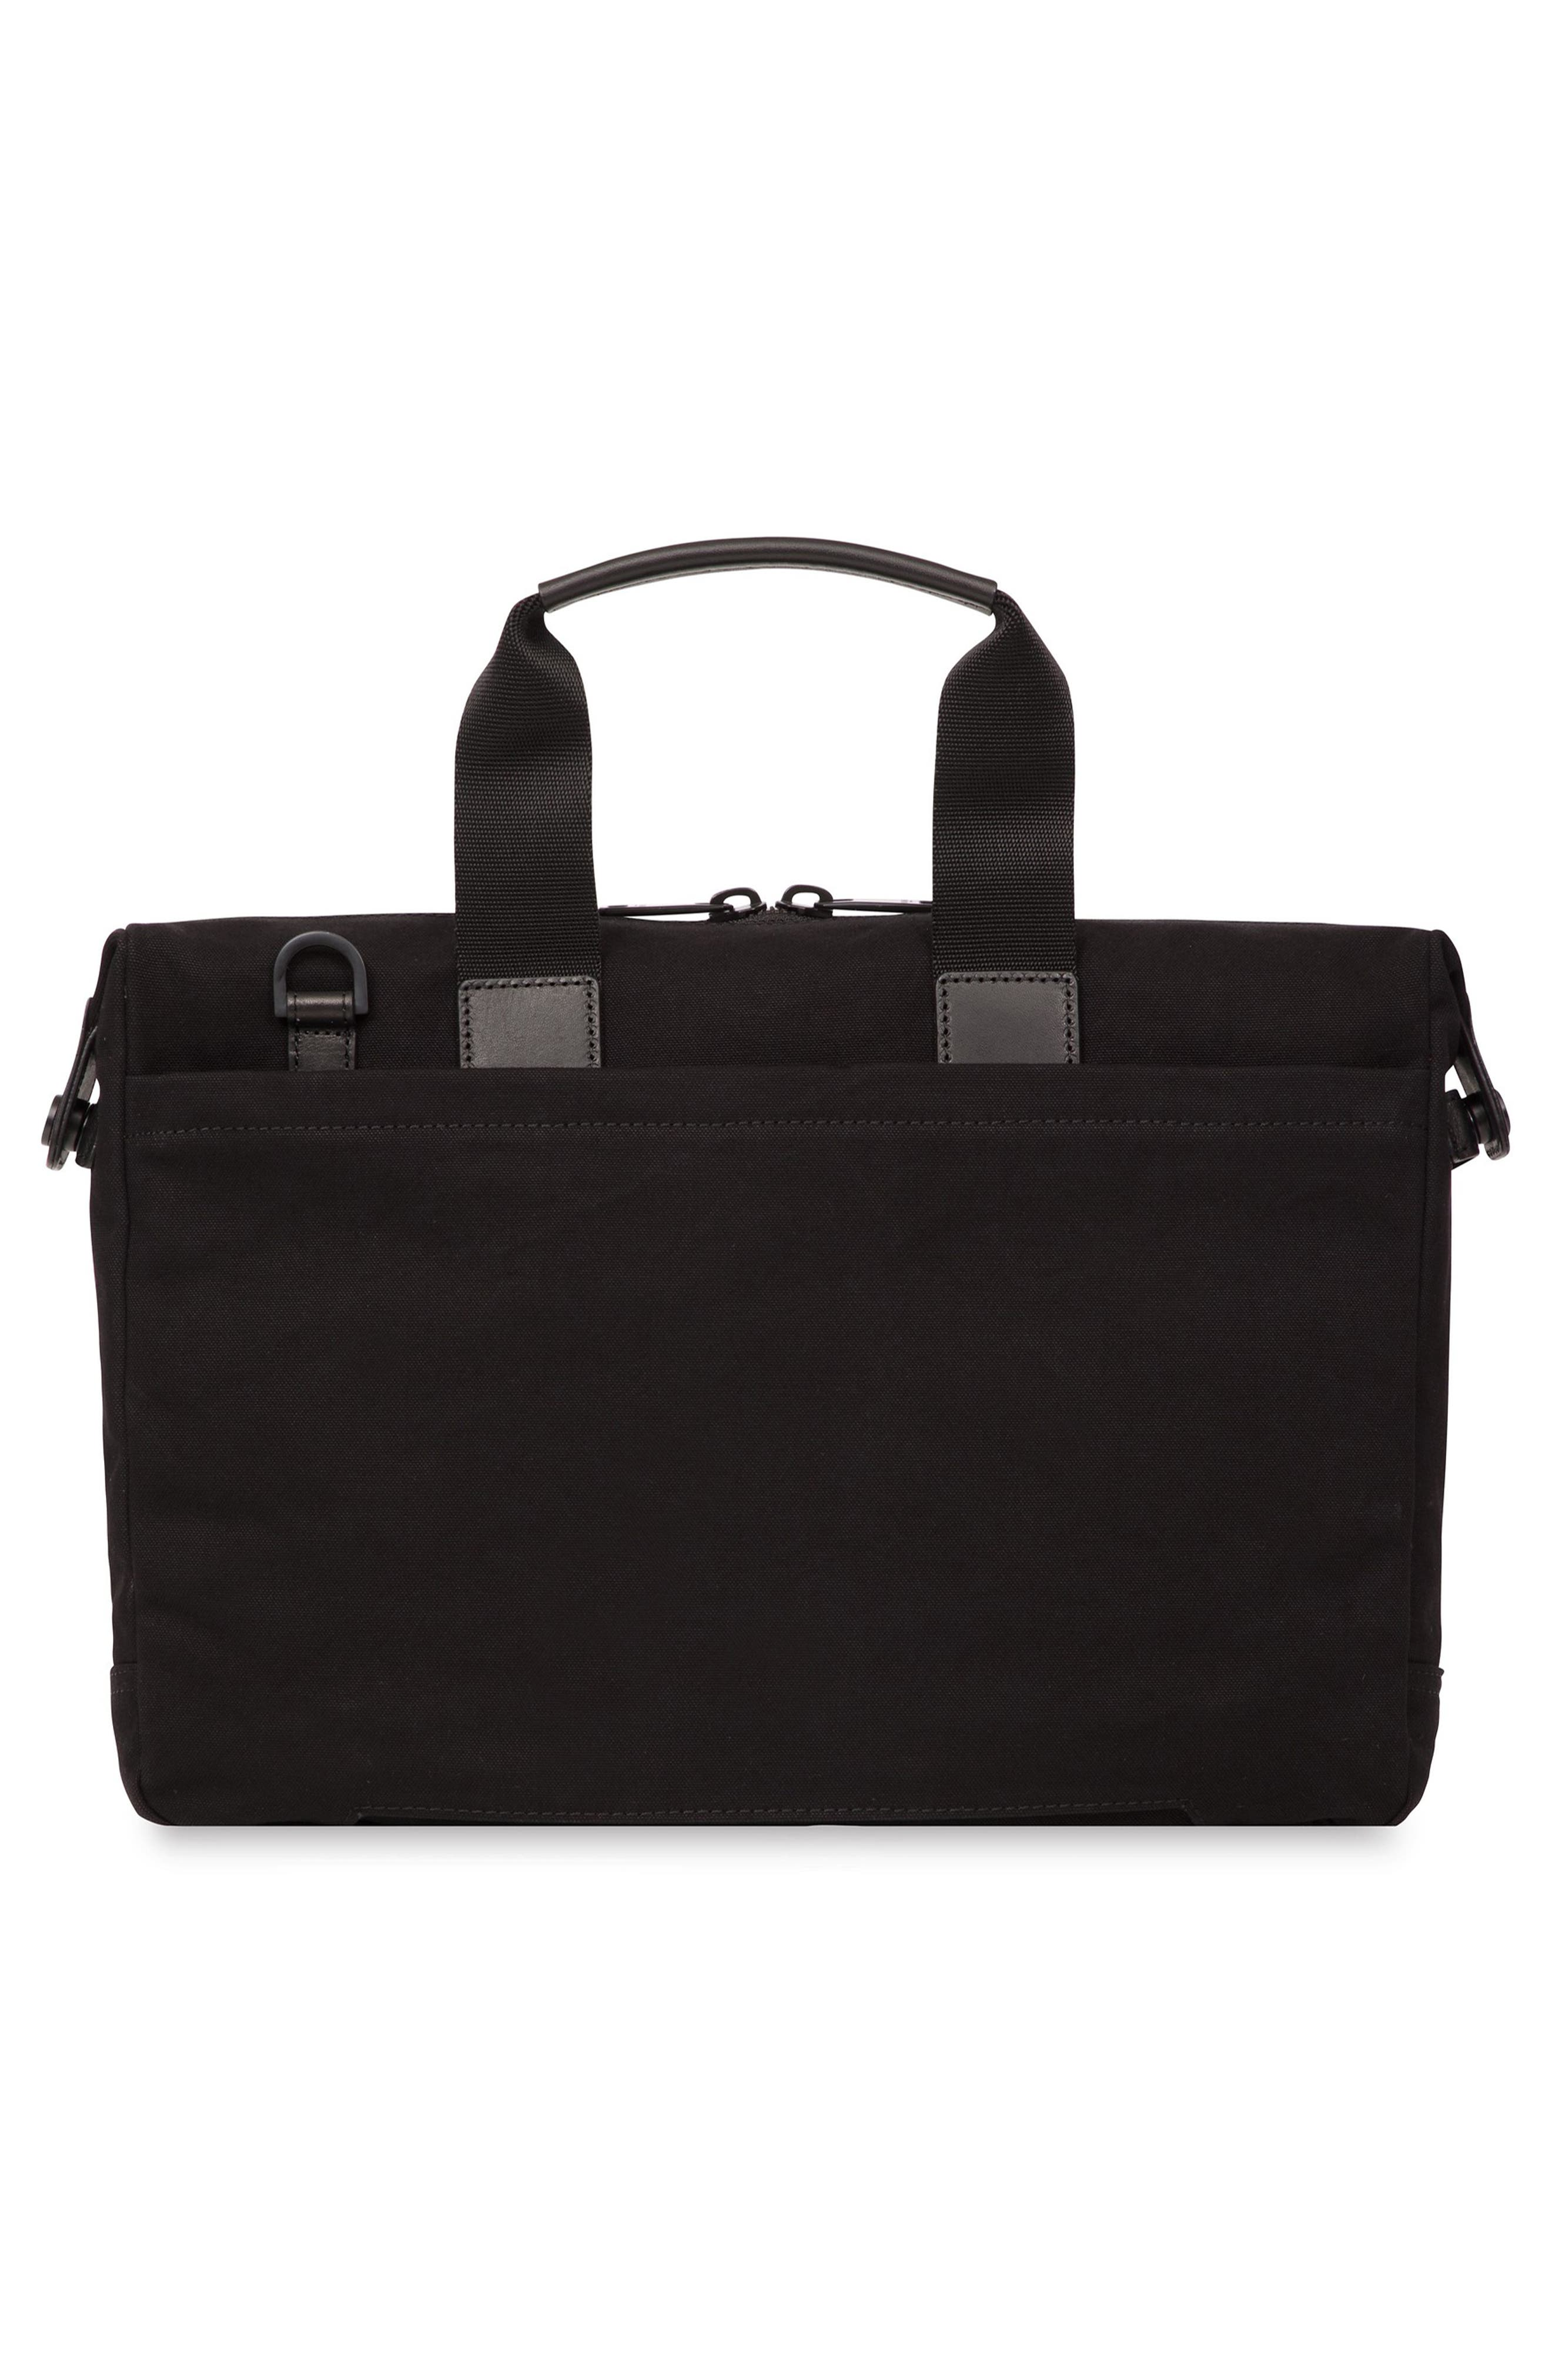 Fulham Blake Slim Briefcase,                             Alternate thumbnail 2, color,                             001